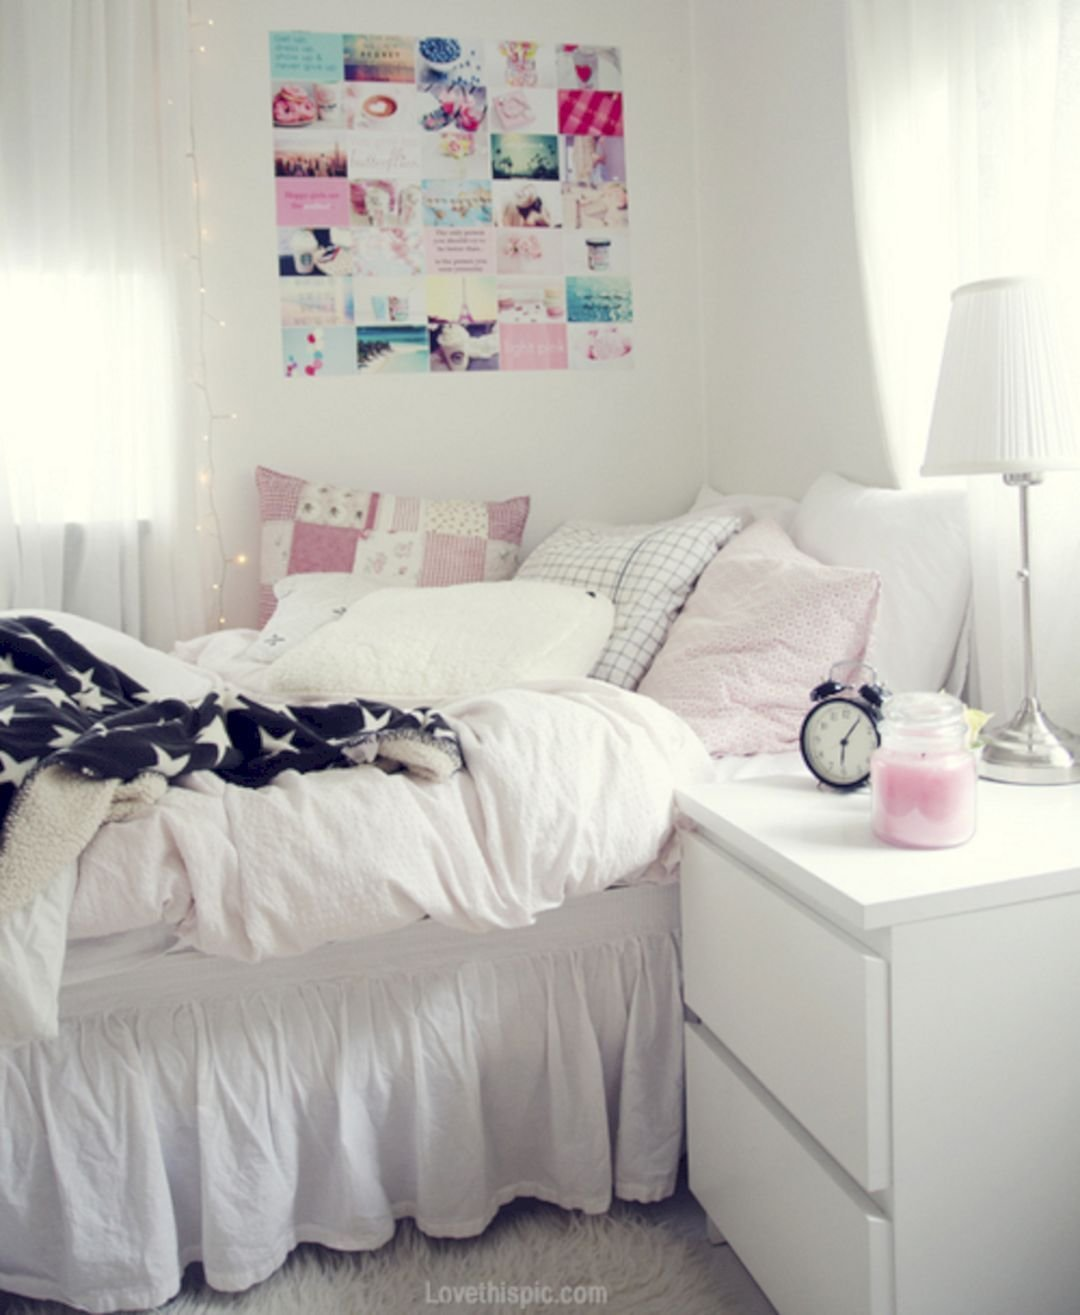 Best Cute White Tumblr Bedroom Ideas 28 Cute White Tumblr With Pictures